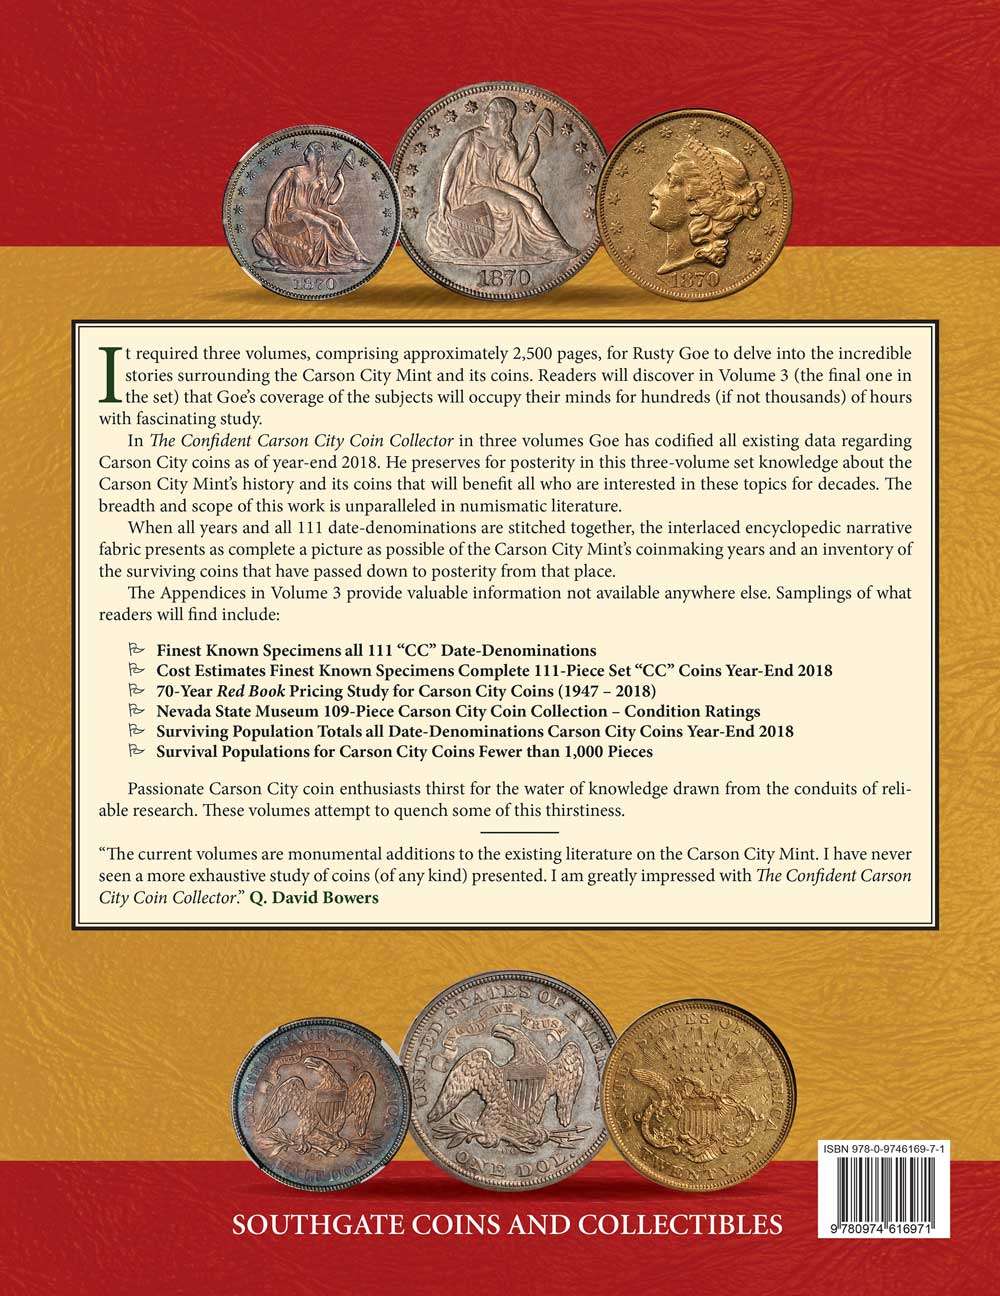 The back cover of The Confident Carson City Coin Collector